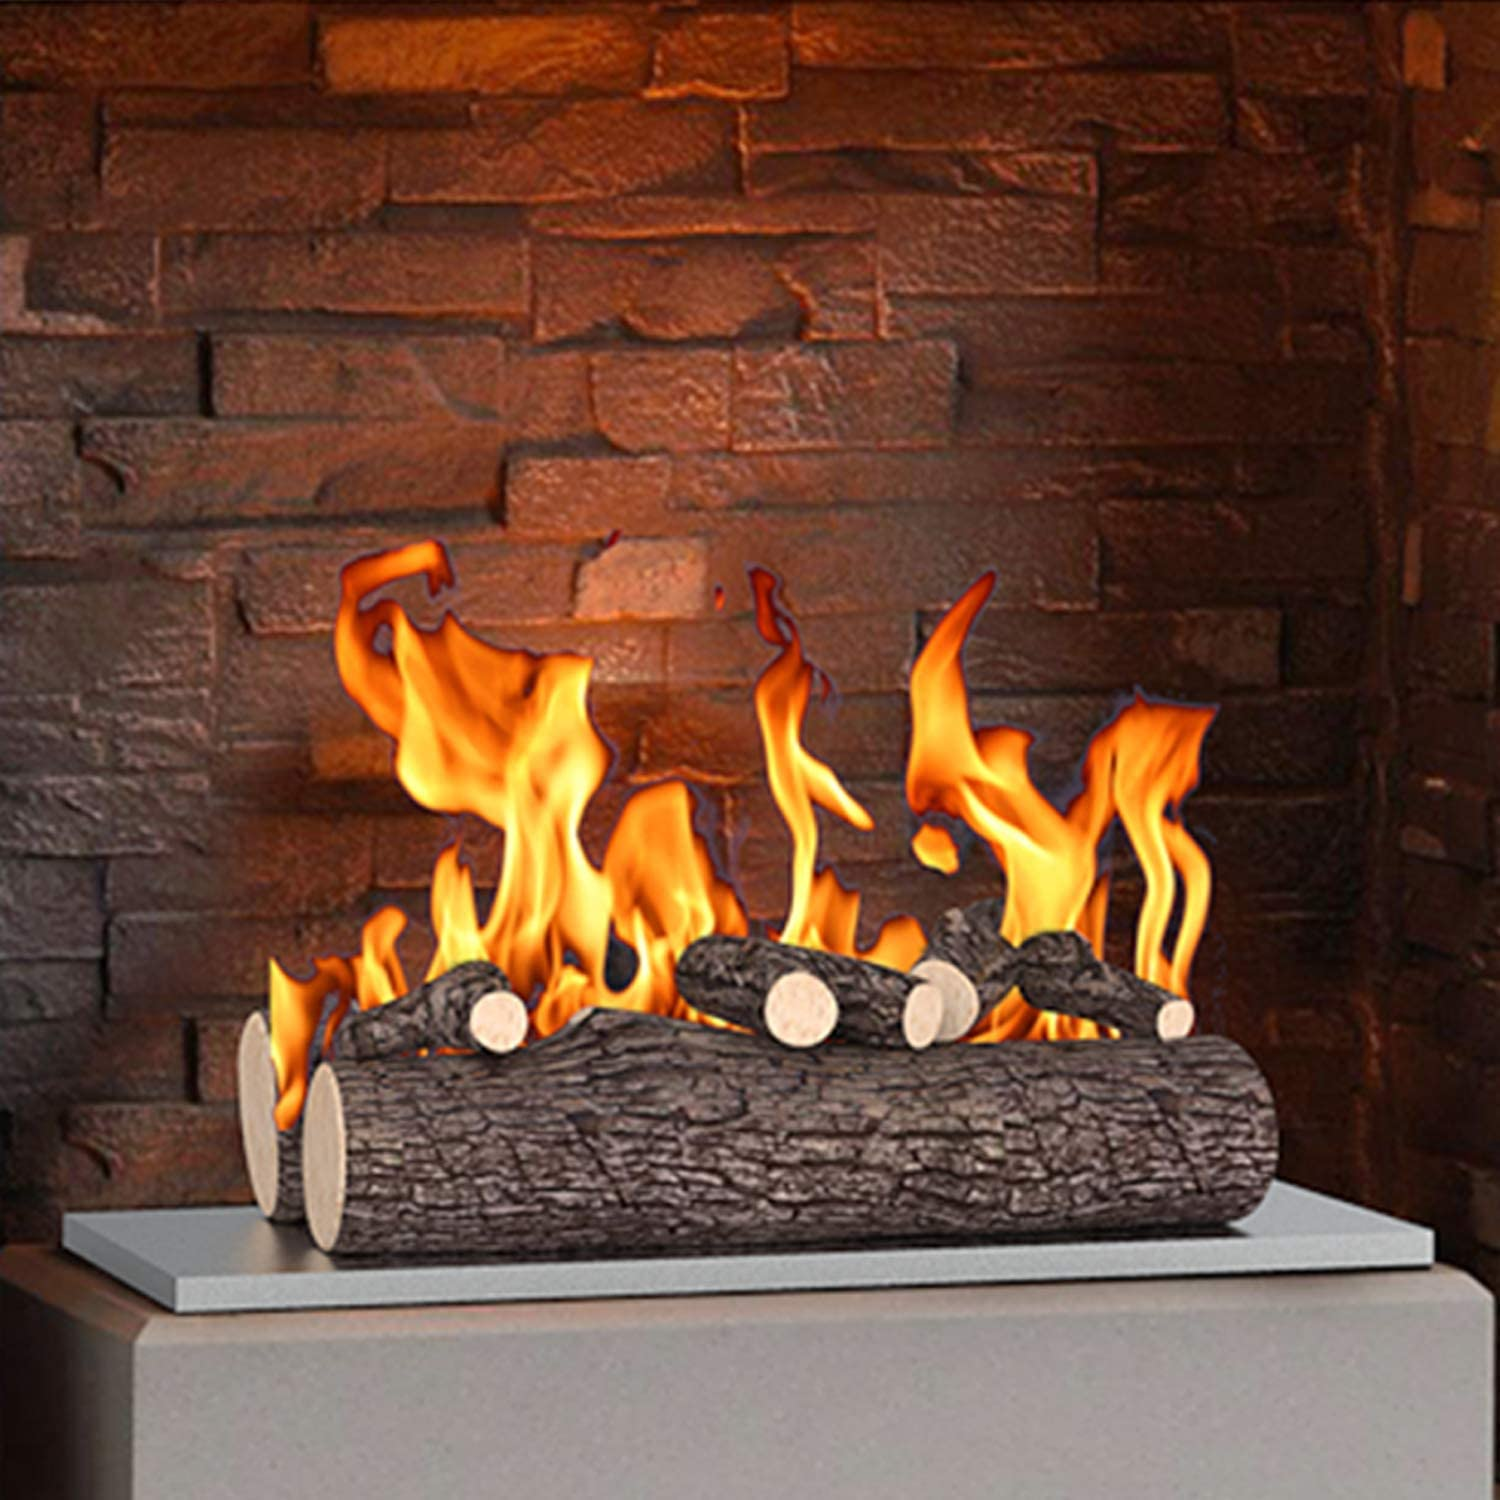 Popular brand Max 85% OFF in the world Regal Flame 5 Piece 16